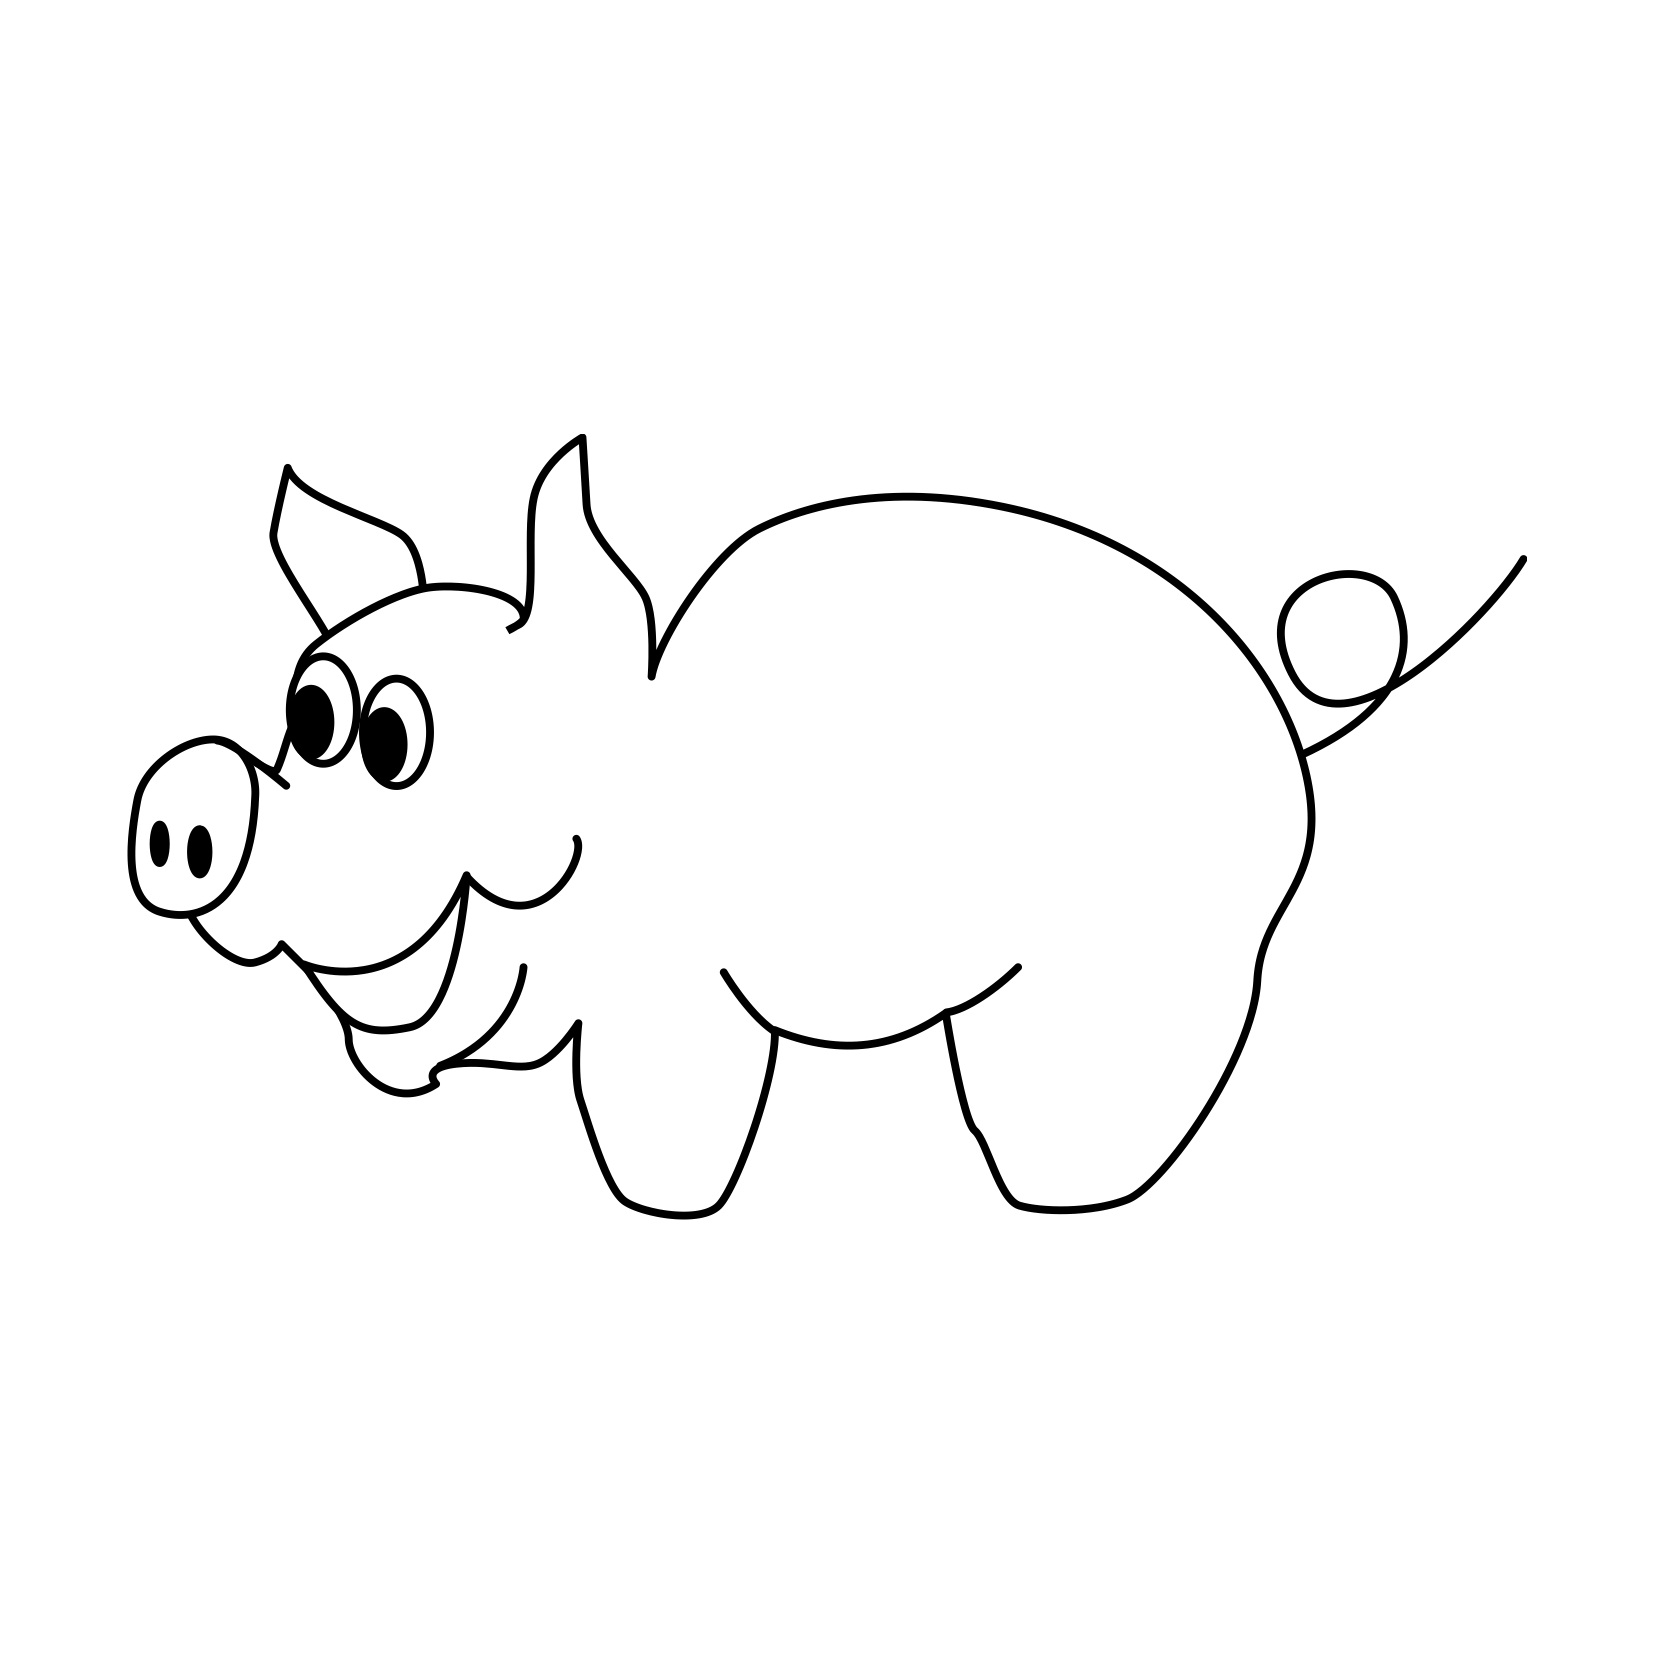 Hufeisen Bastelvorlage Free Printable Pig Coloring Pages For Kids Animal Place